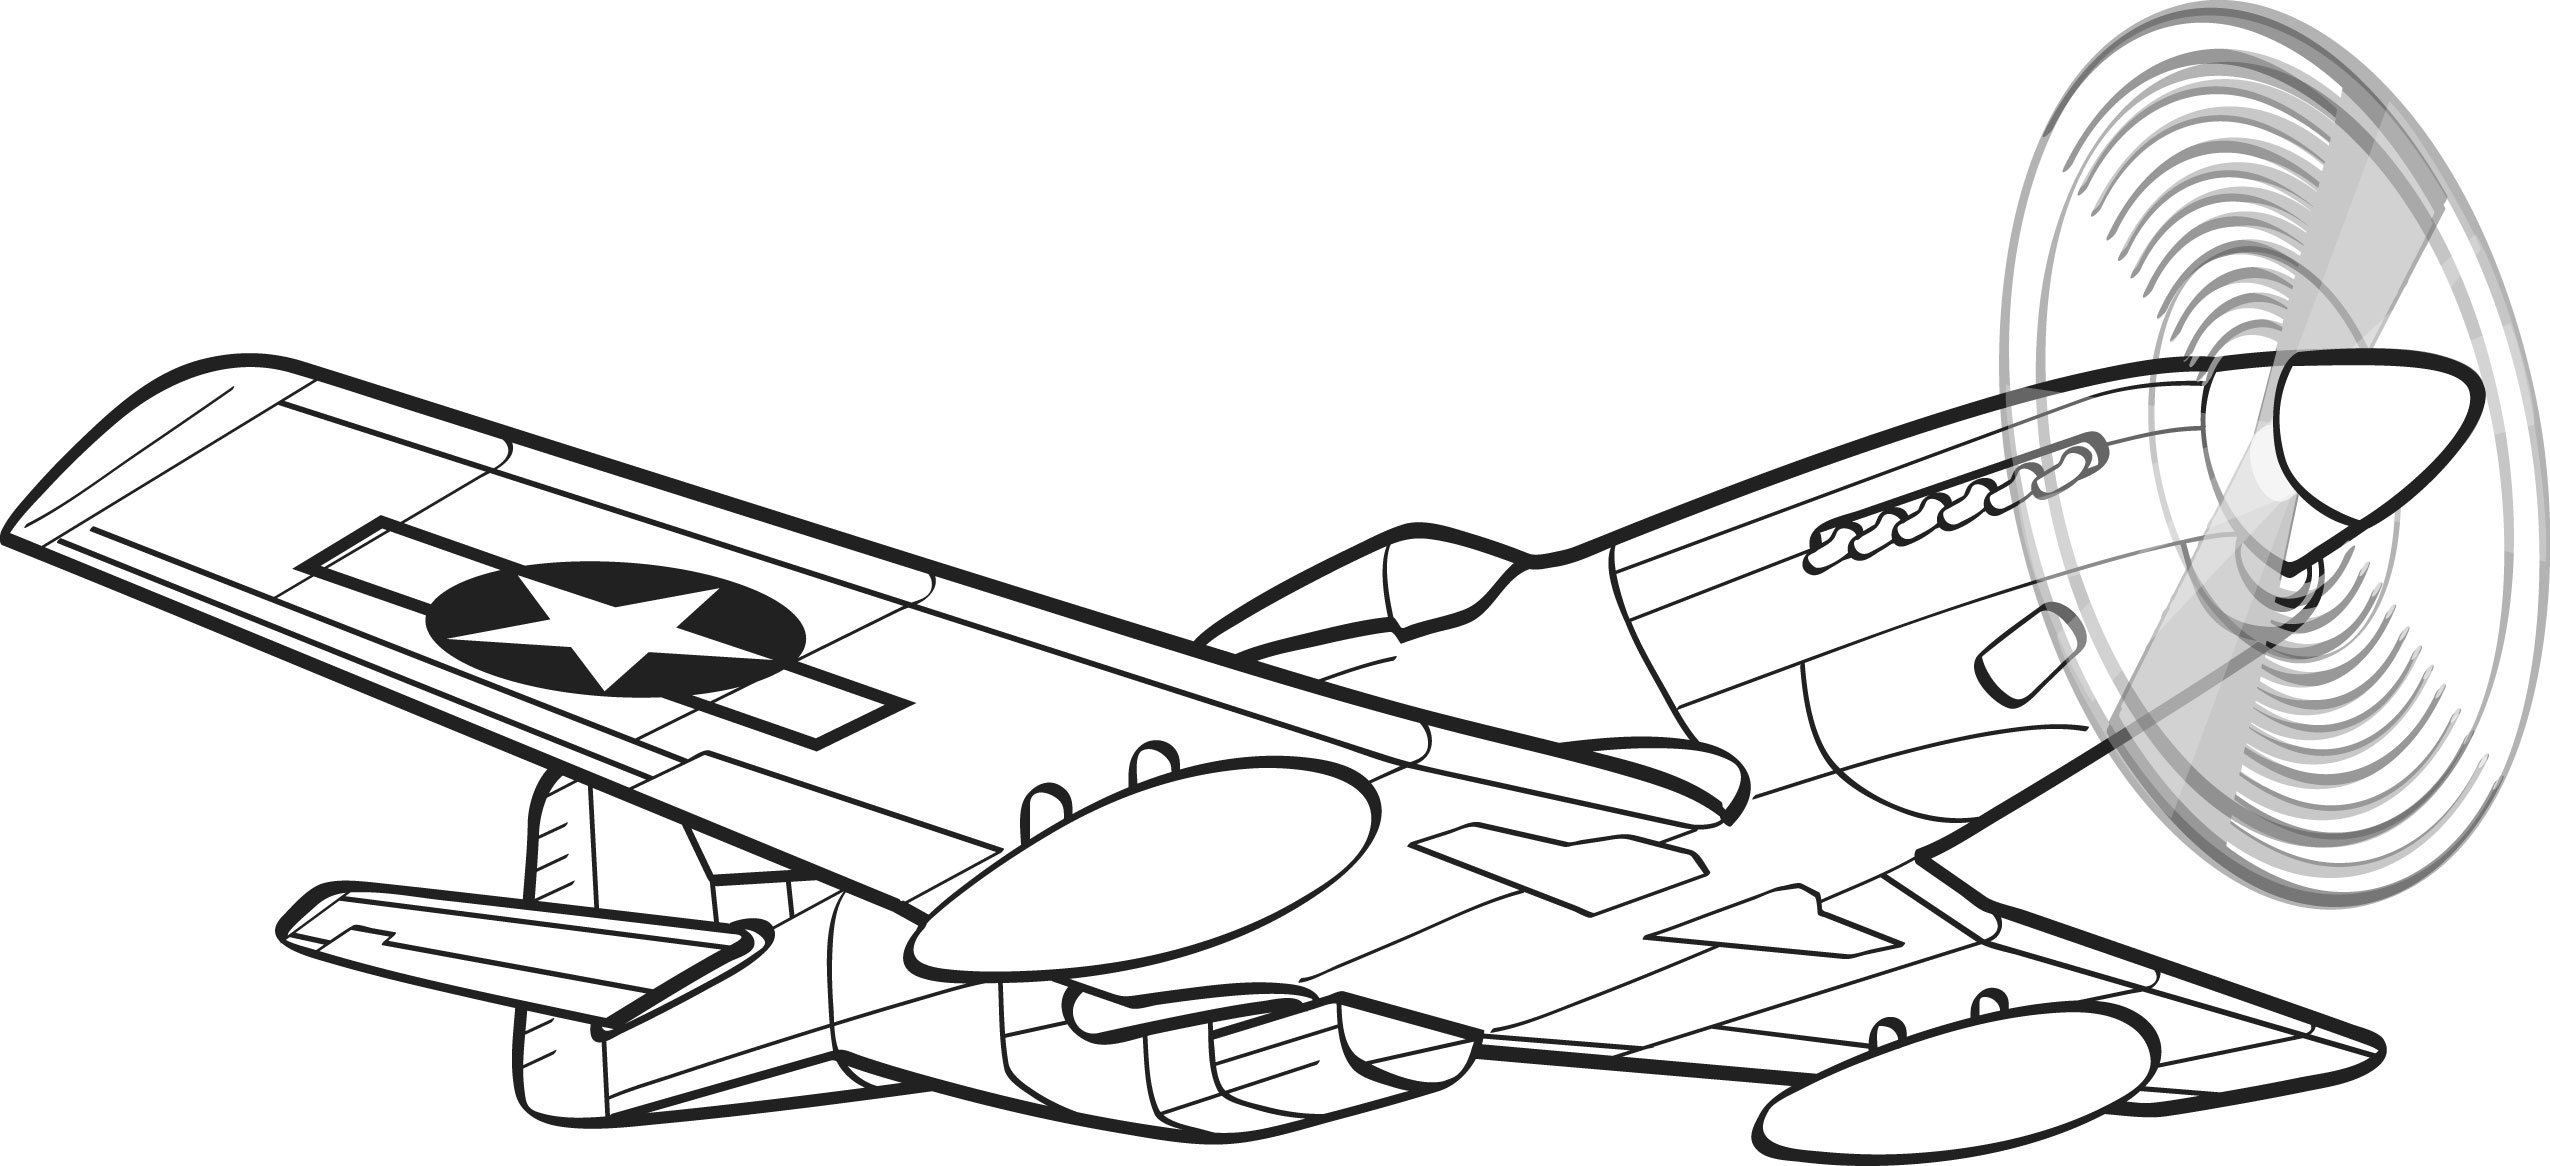 2550x1166 Plane Tattoo Designs Worked Very Hard To Create Cool